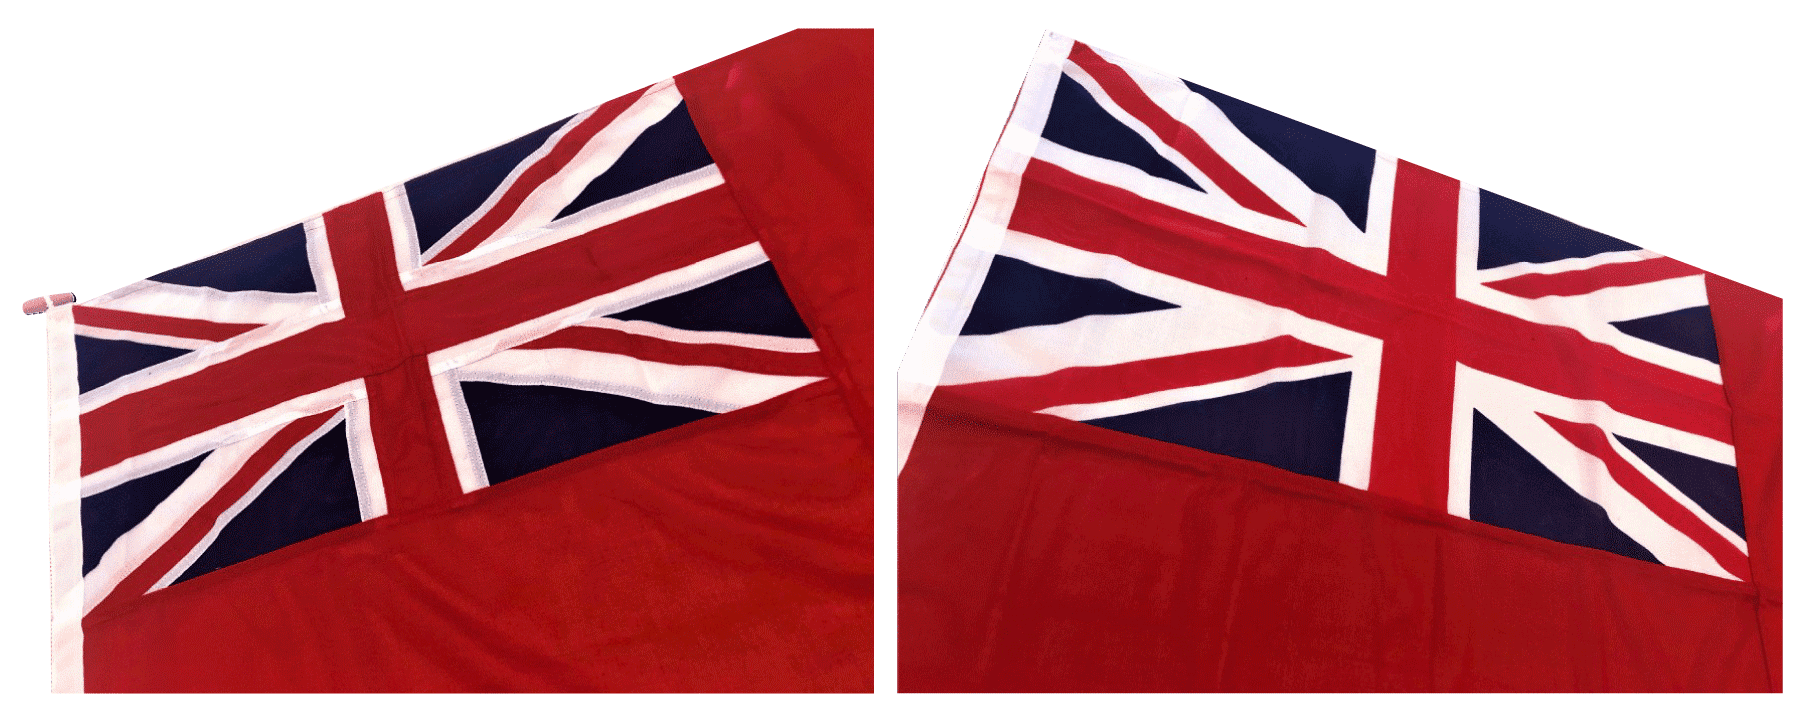 red-ensign-2.png